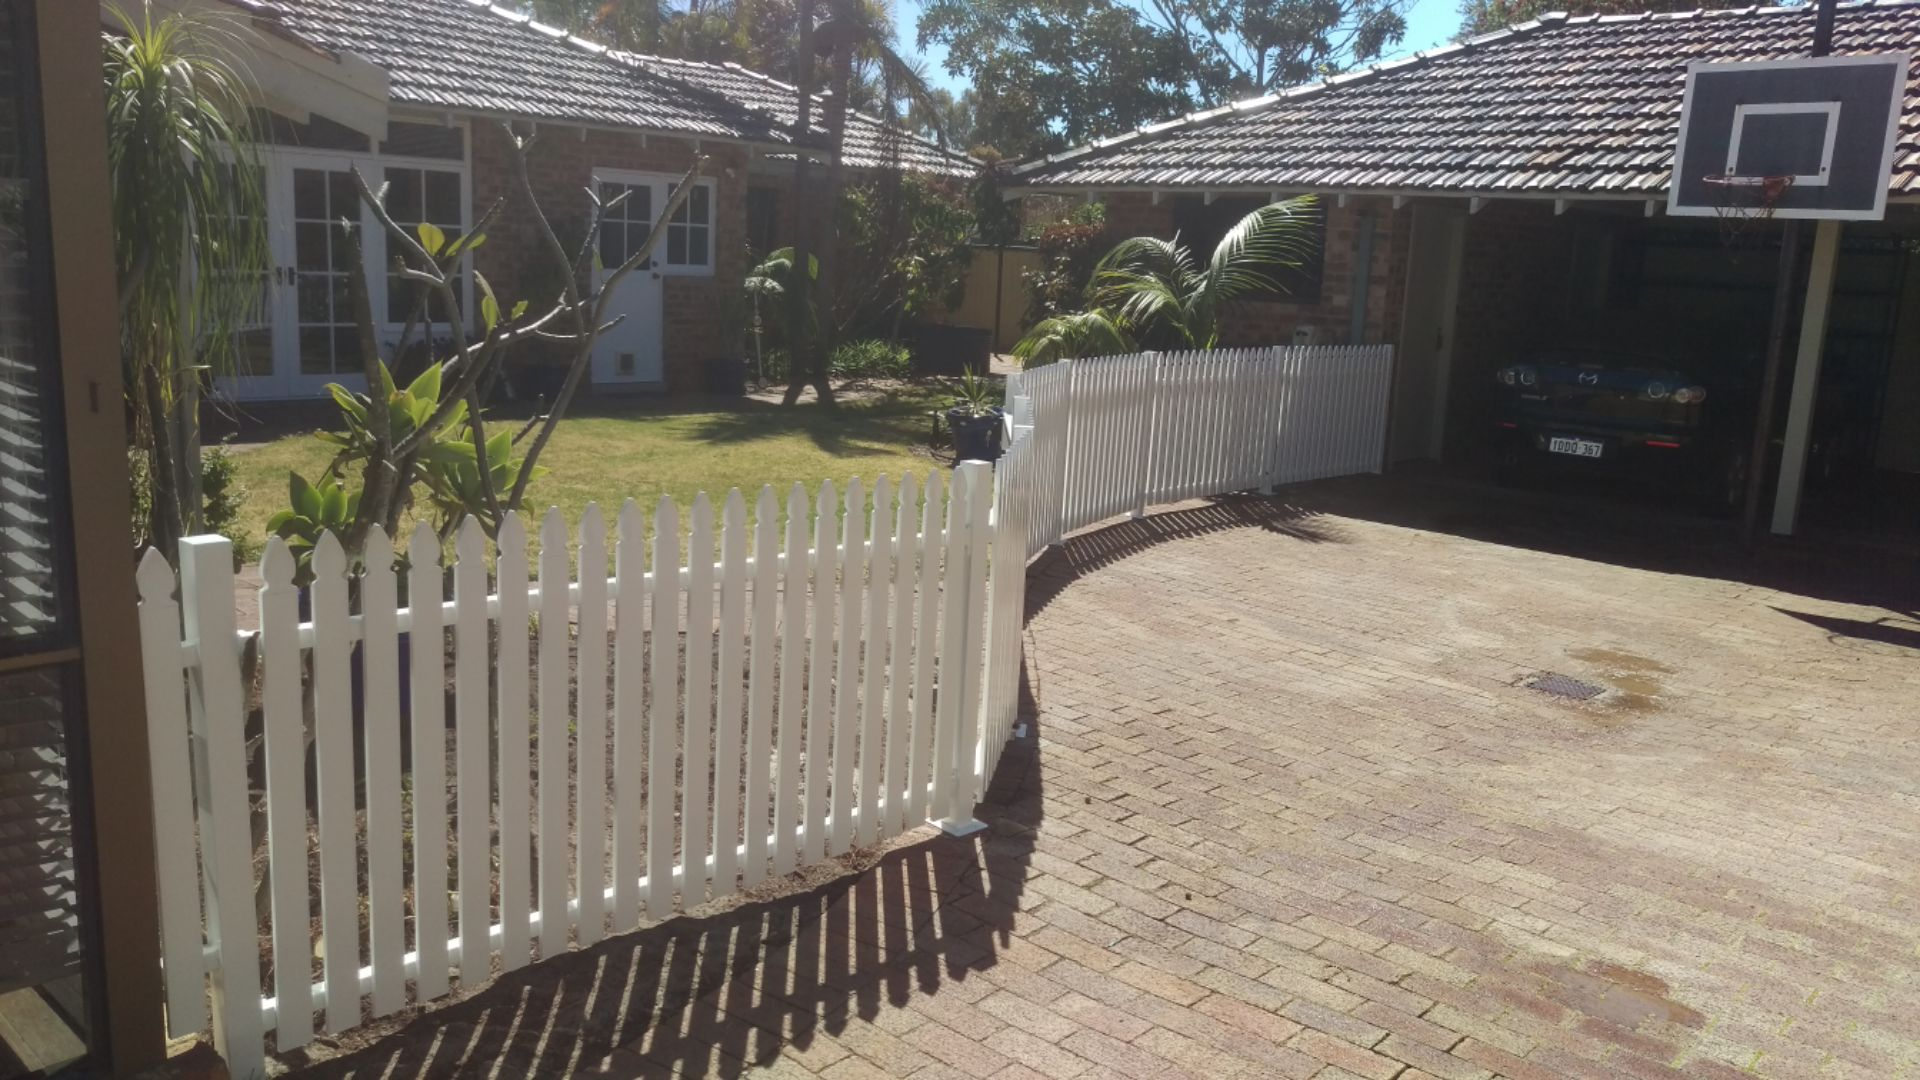 Colonial picket fence and gate - Churchlands - curved